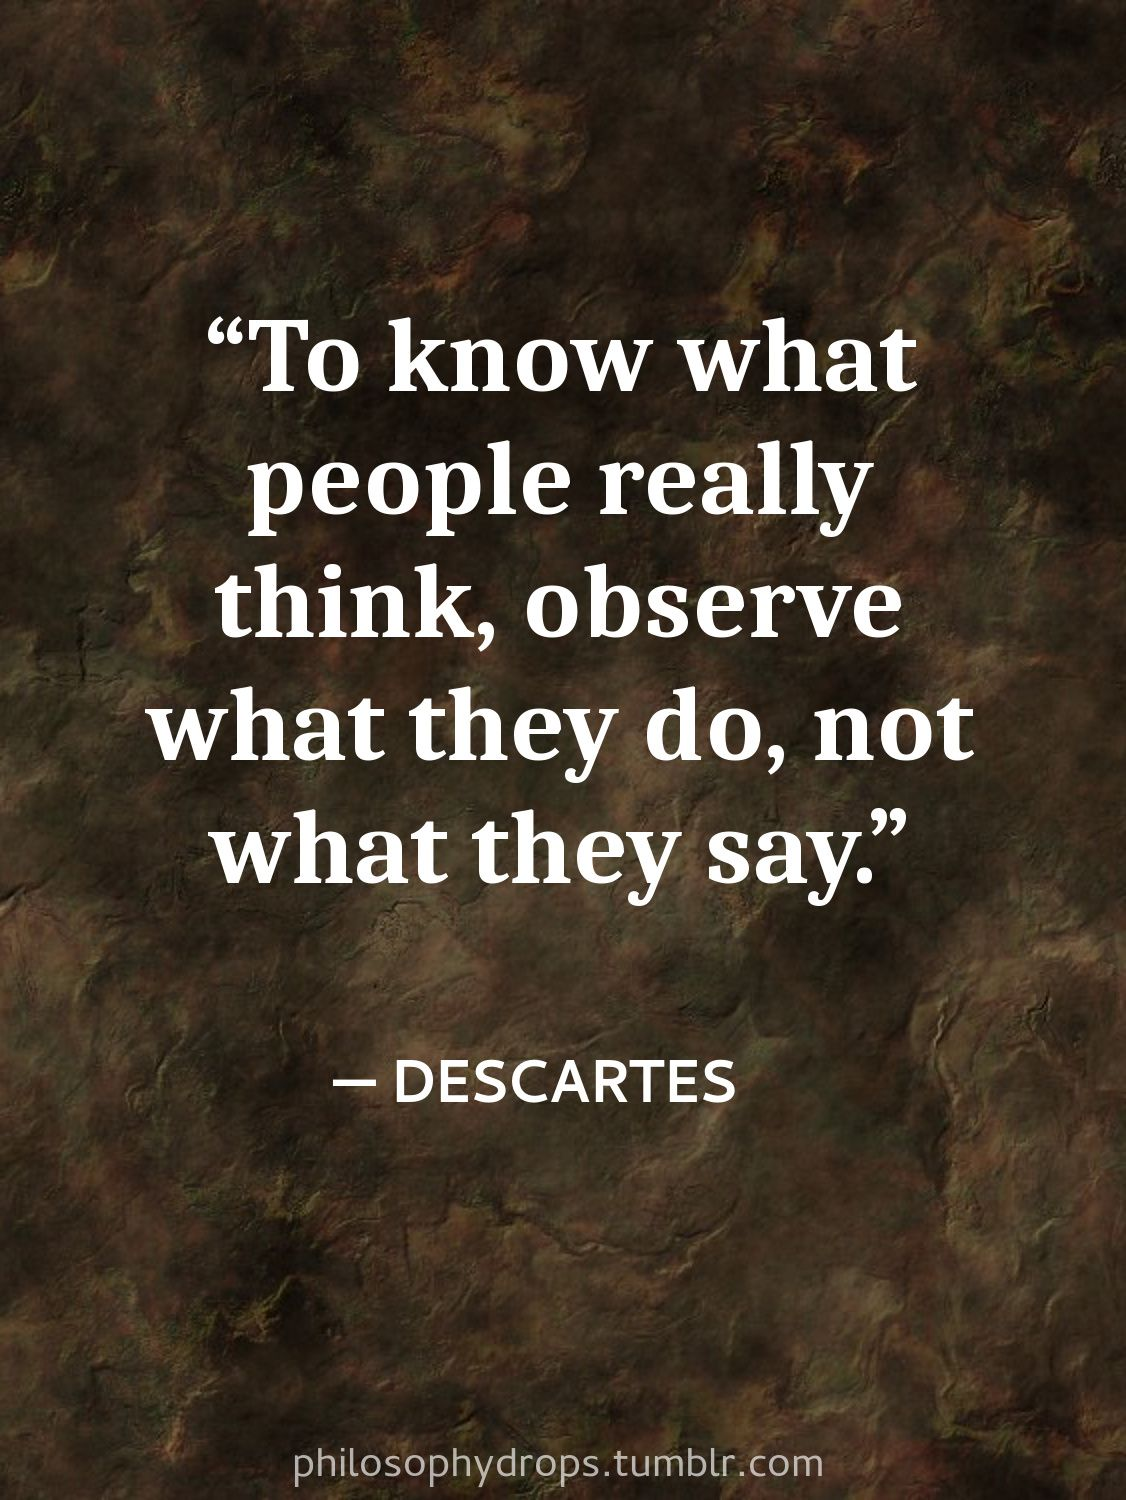 philosophy drops   Wise quotes, Wisdom quotes, Philosophical quotes